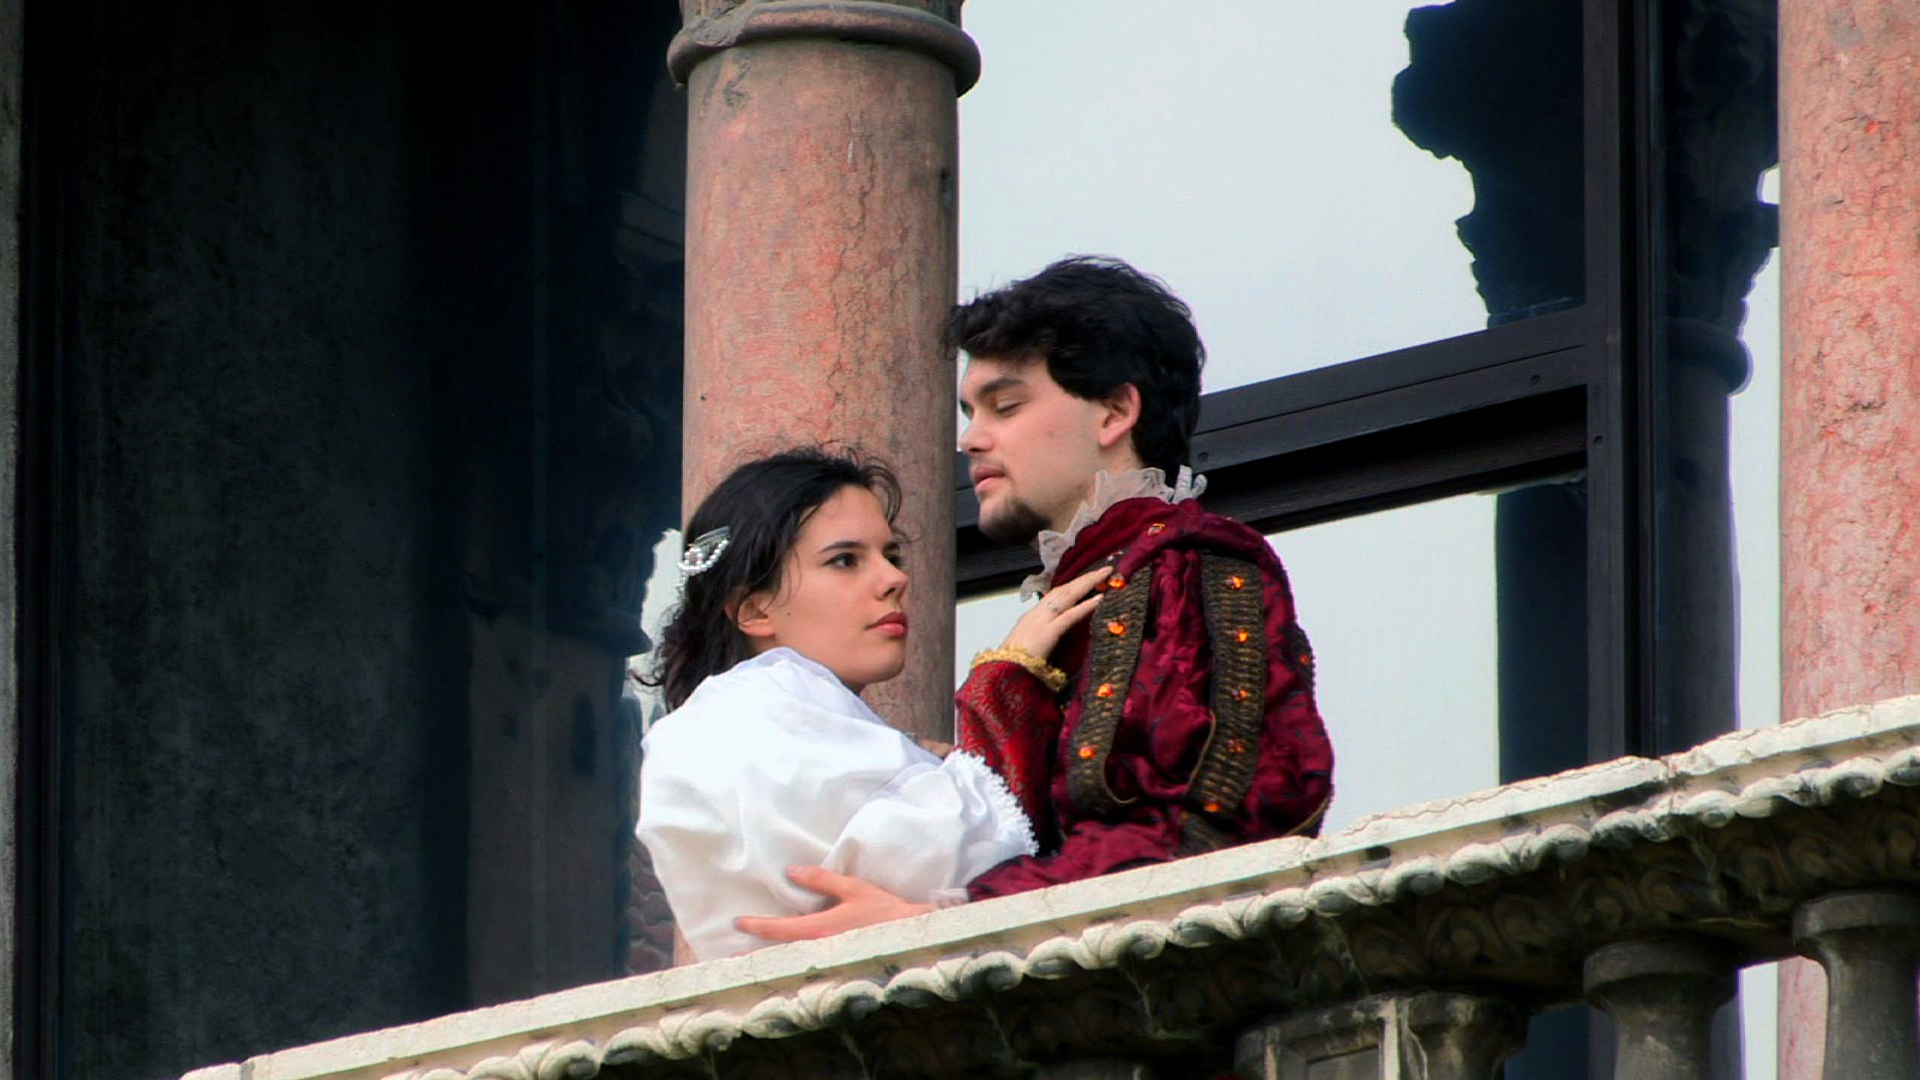 shakespeare romeo and juliet Directed by baz luhrmann with leonardo dicaprio, claire danes, john leguizamo, harold perrineau shakespeare's famous play is updated to the hip modern suburb of verona still retaining its original dialogue.